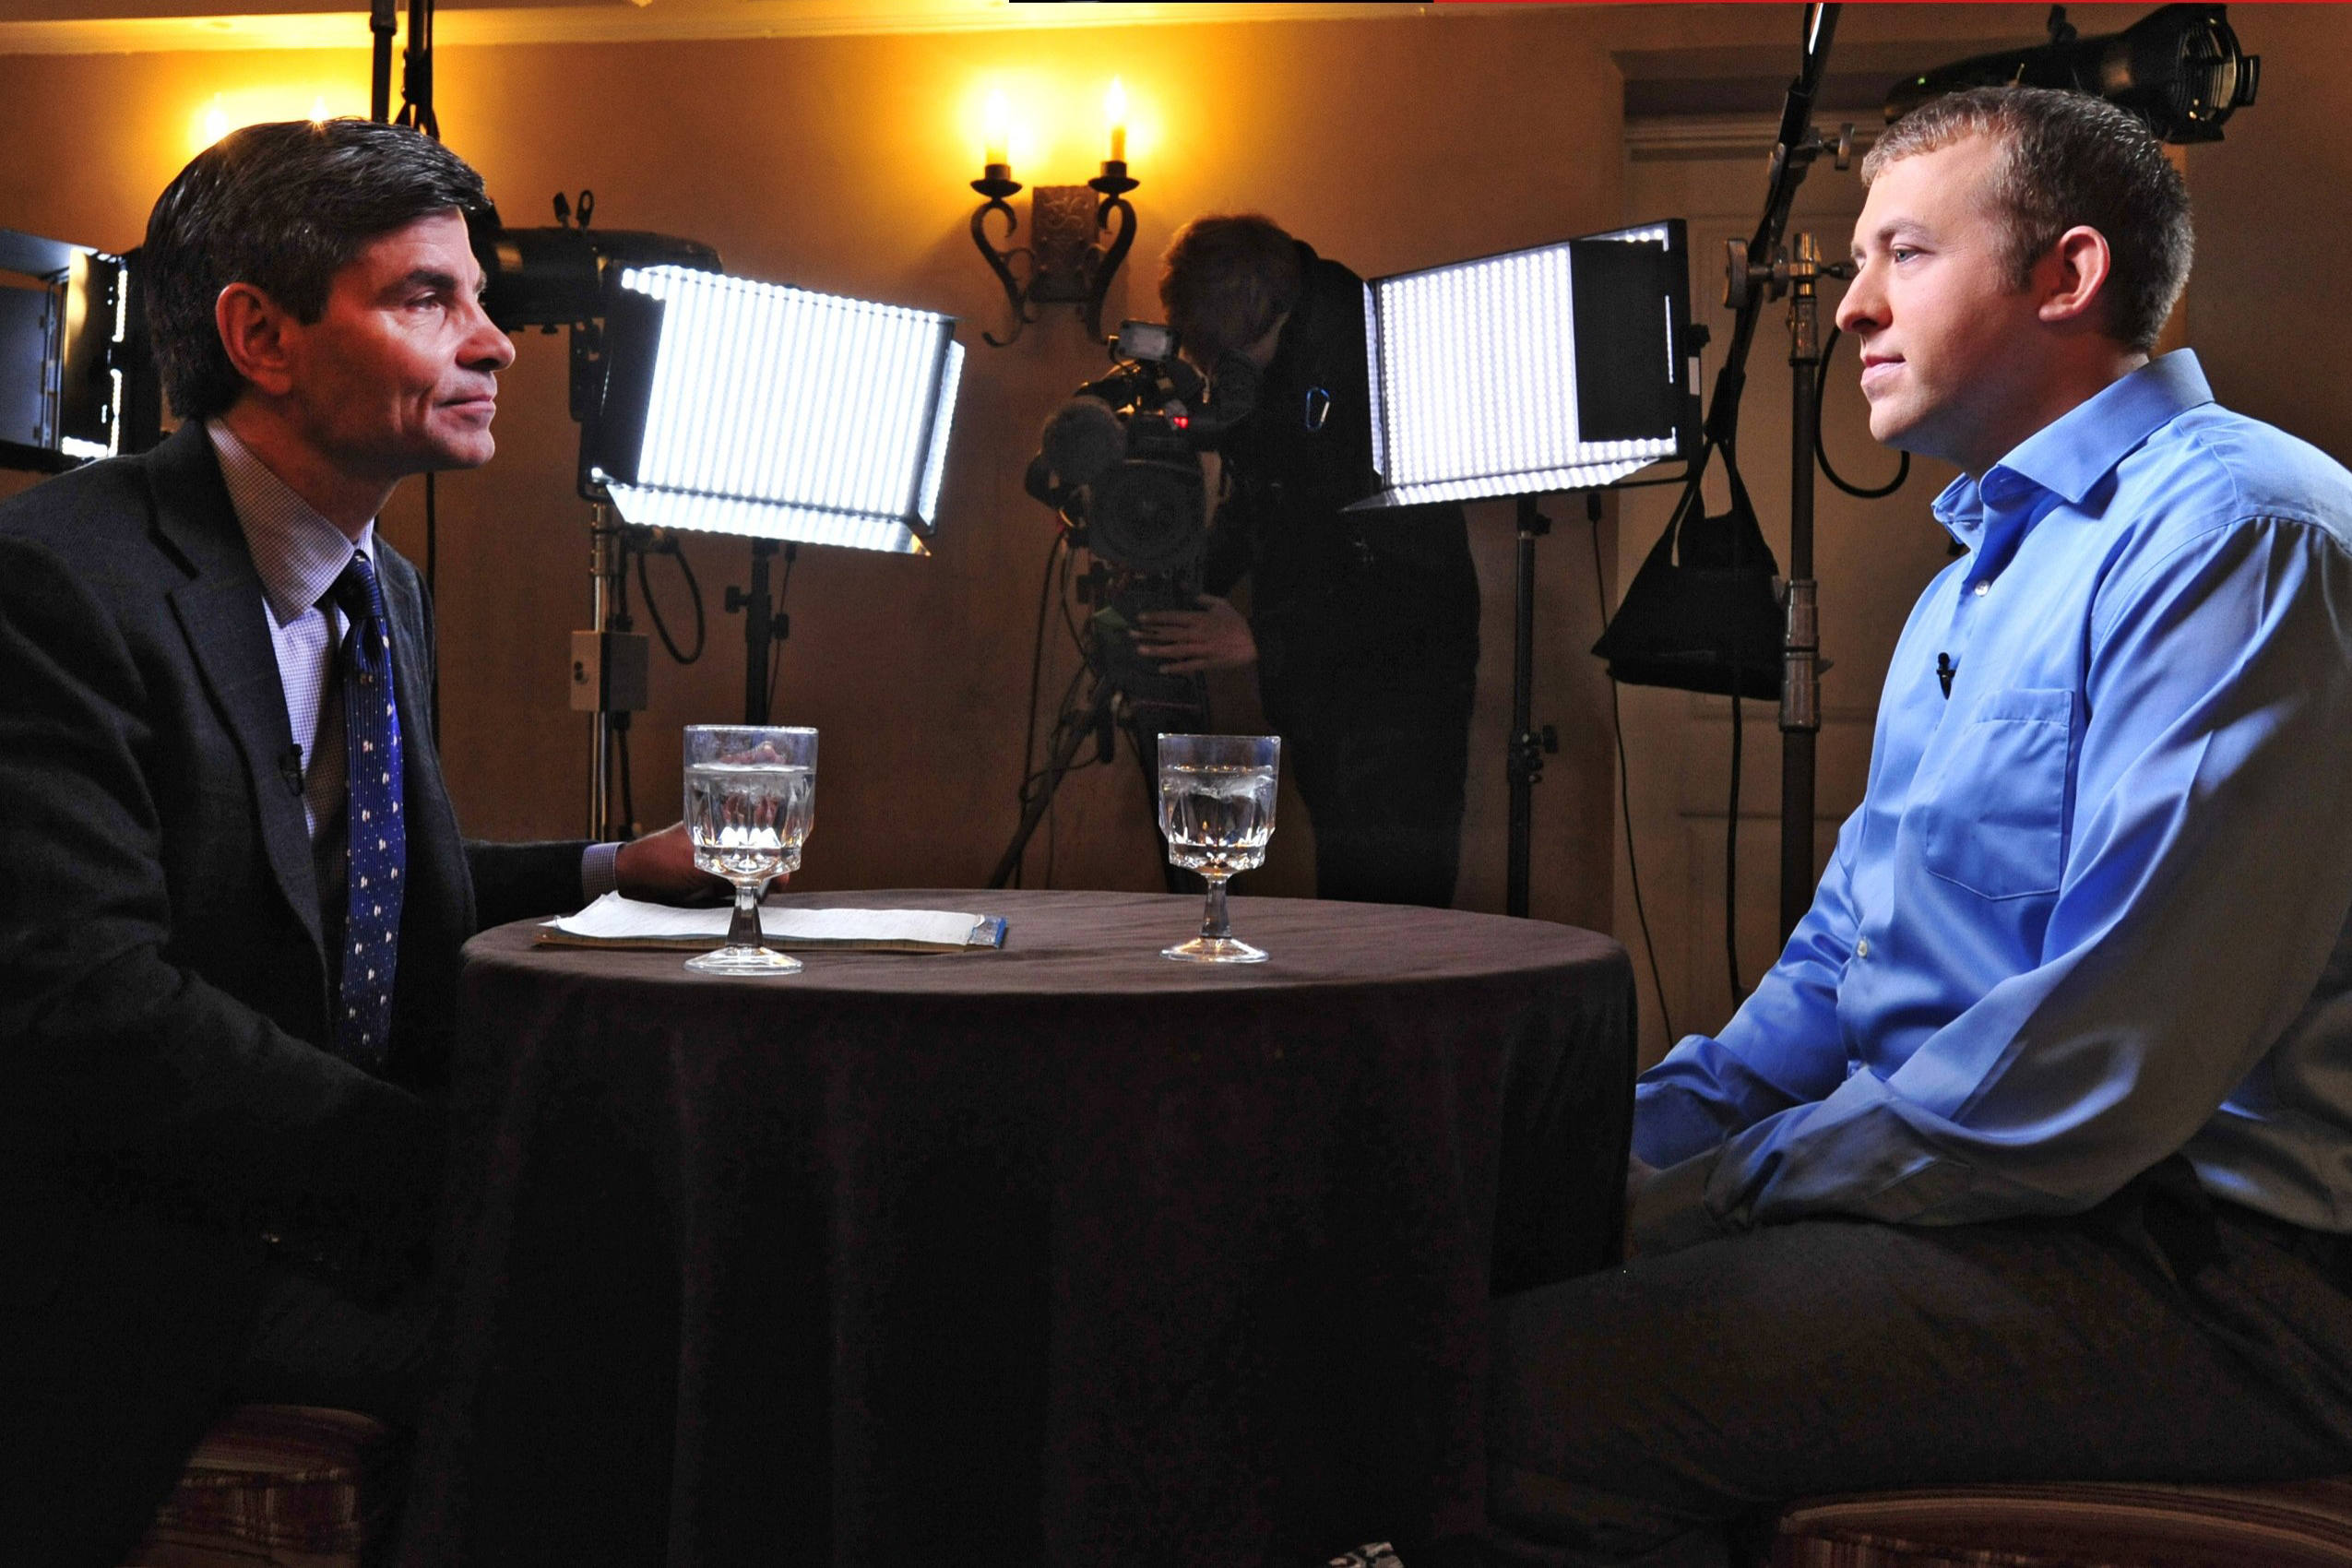 Police officer Darren Wilson breaks his silence about the shooting of Michael Brown in an interview with ABC News' George Stephanopoulos on Nov. 25, 2014